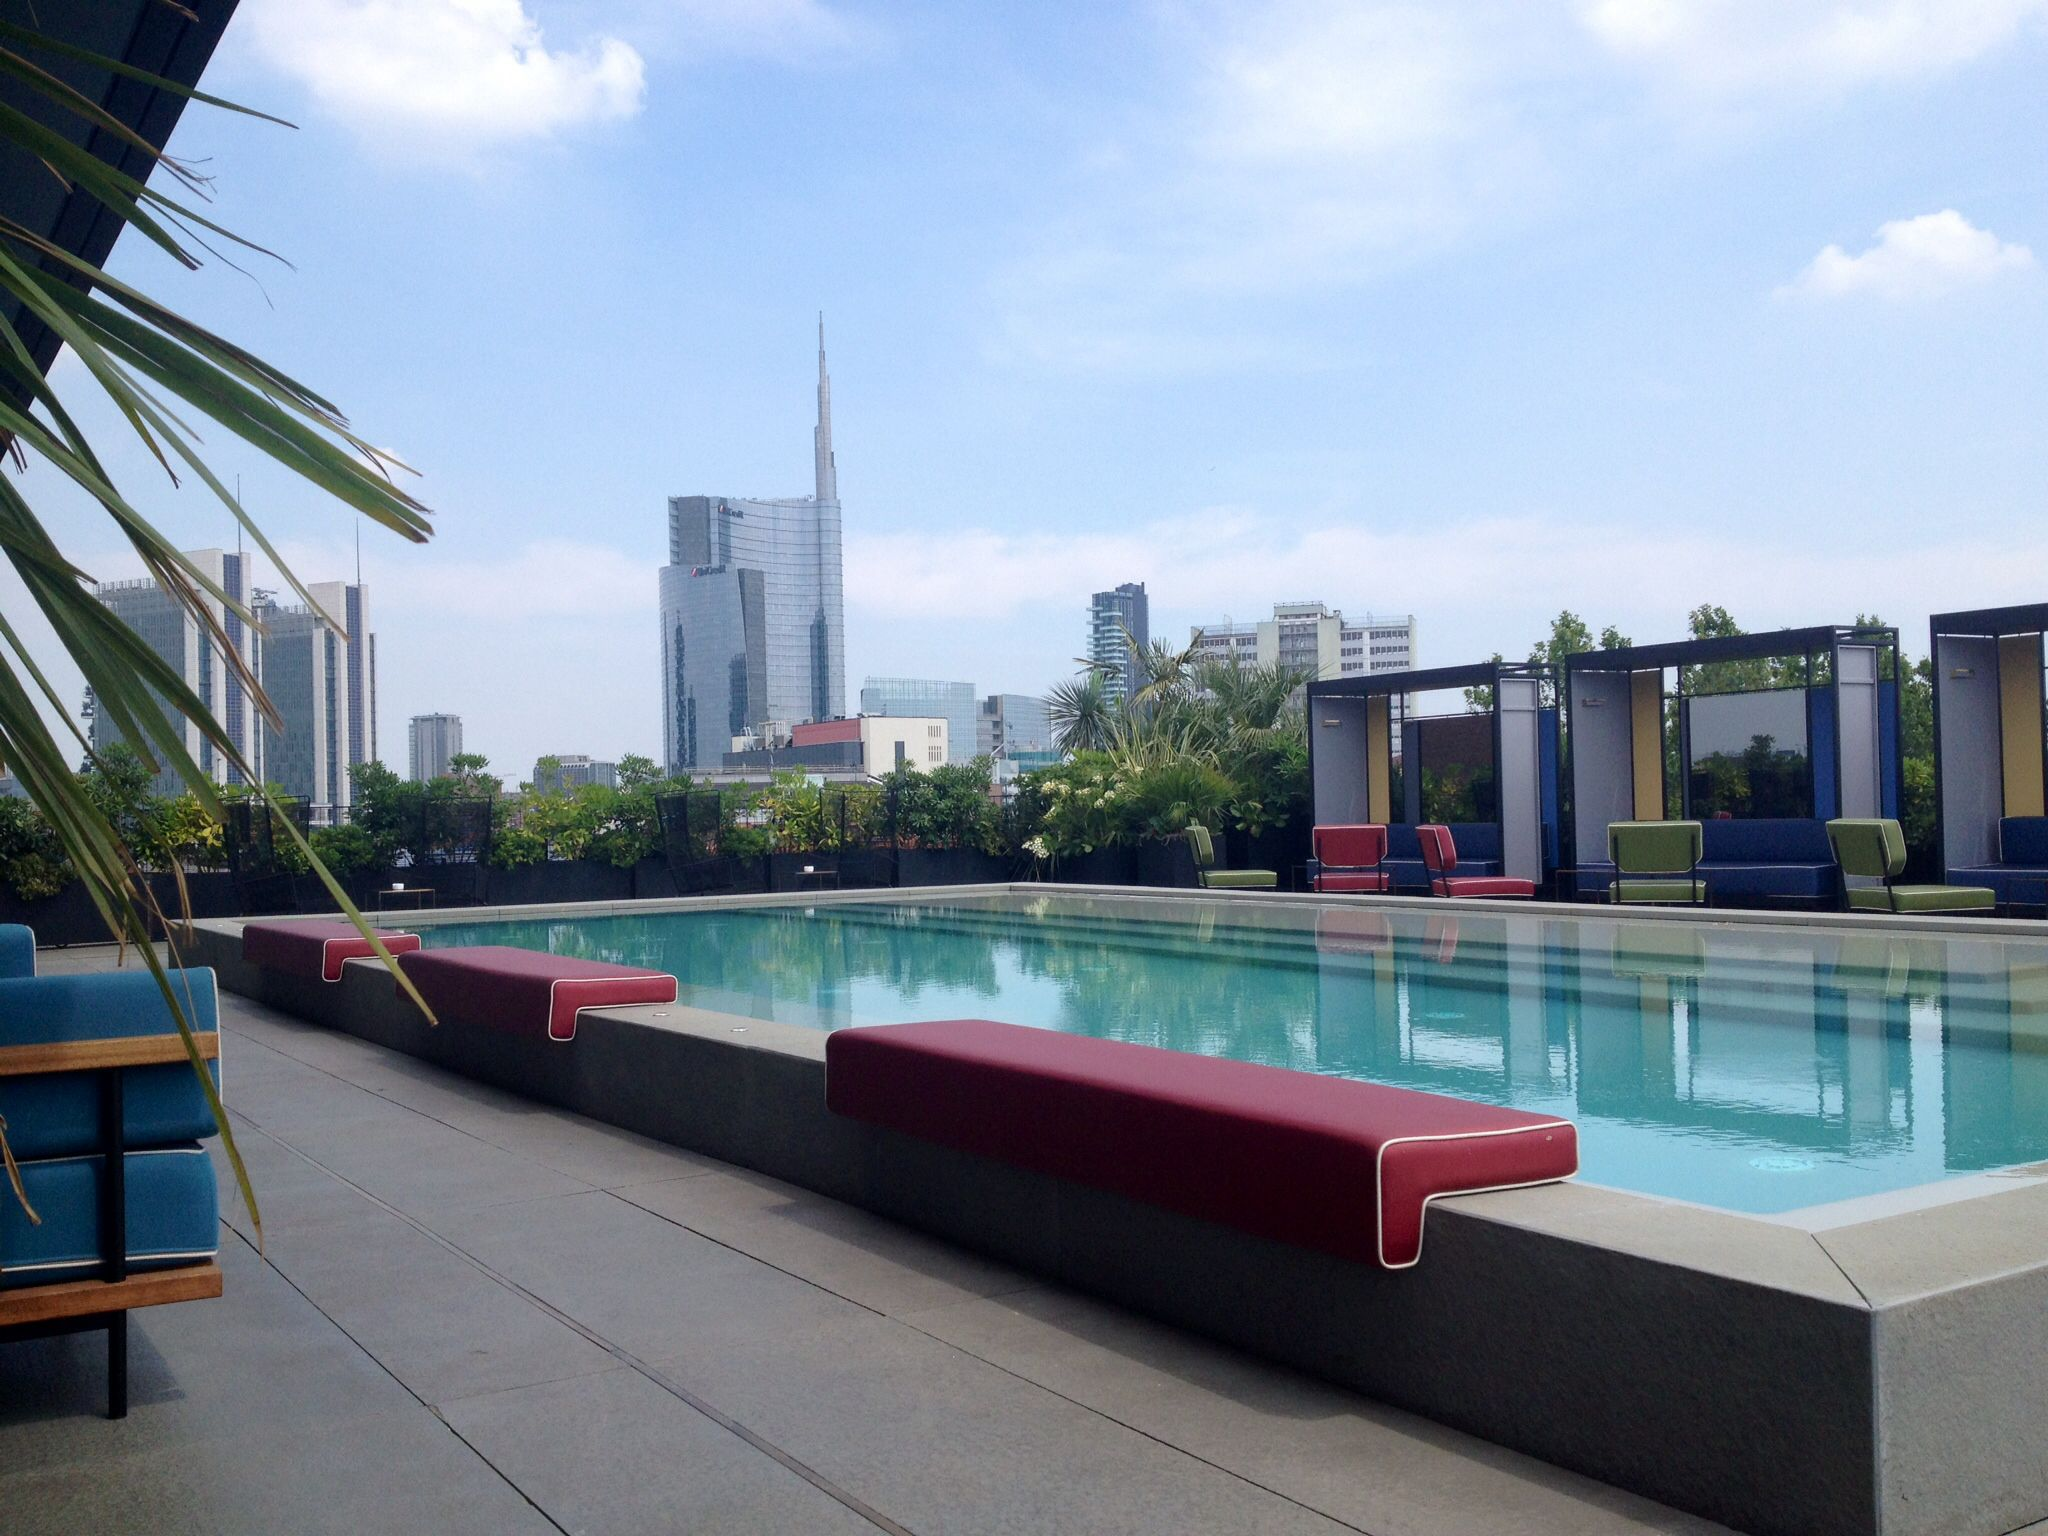 The terrace of the newly opened Ceresio 7 pools & Restaurant on the ...